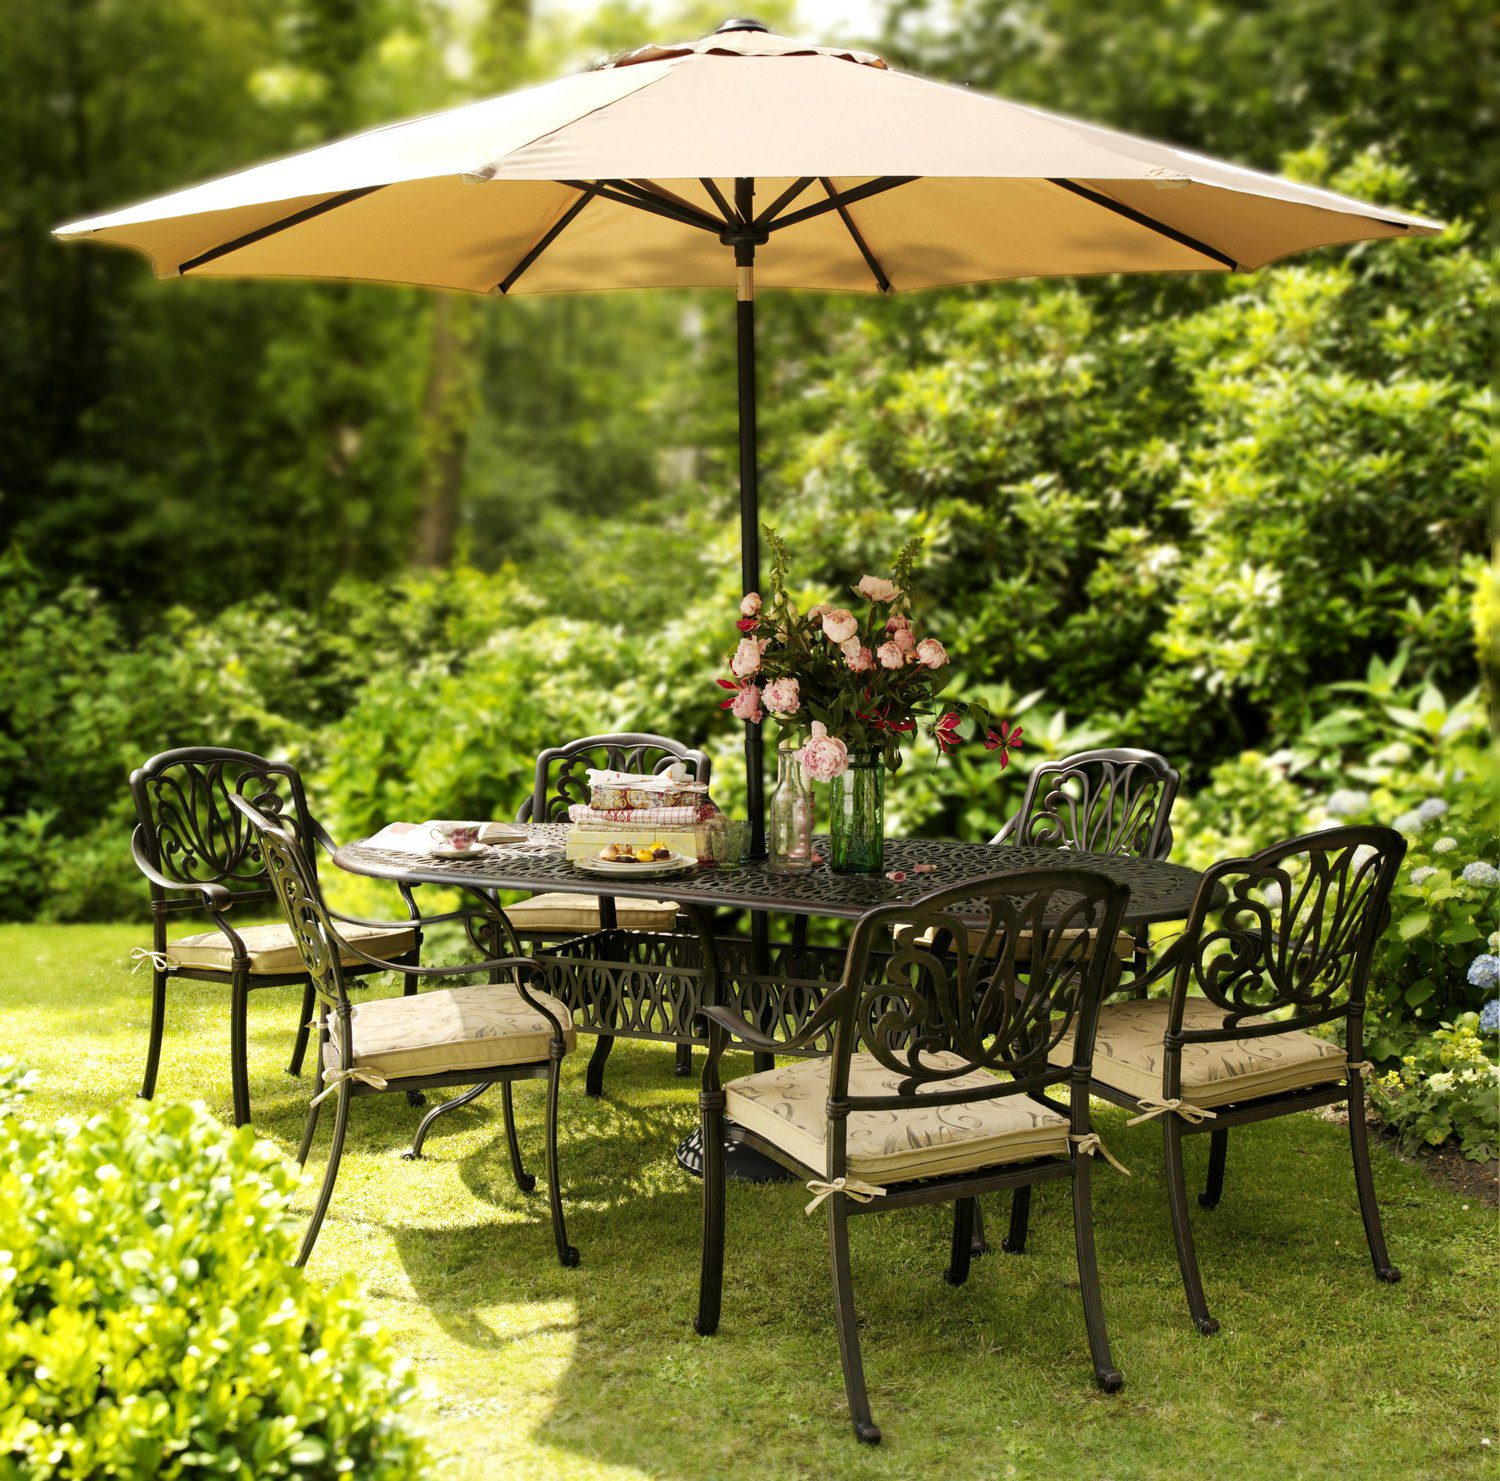 hartman garden furniture garden furniture norwich camping. Black Bedroom Furniture Sets. Home Design Ideas